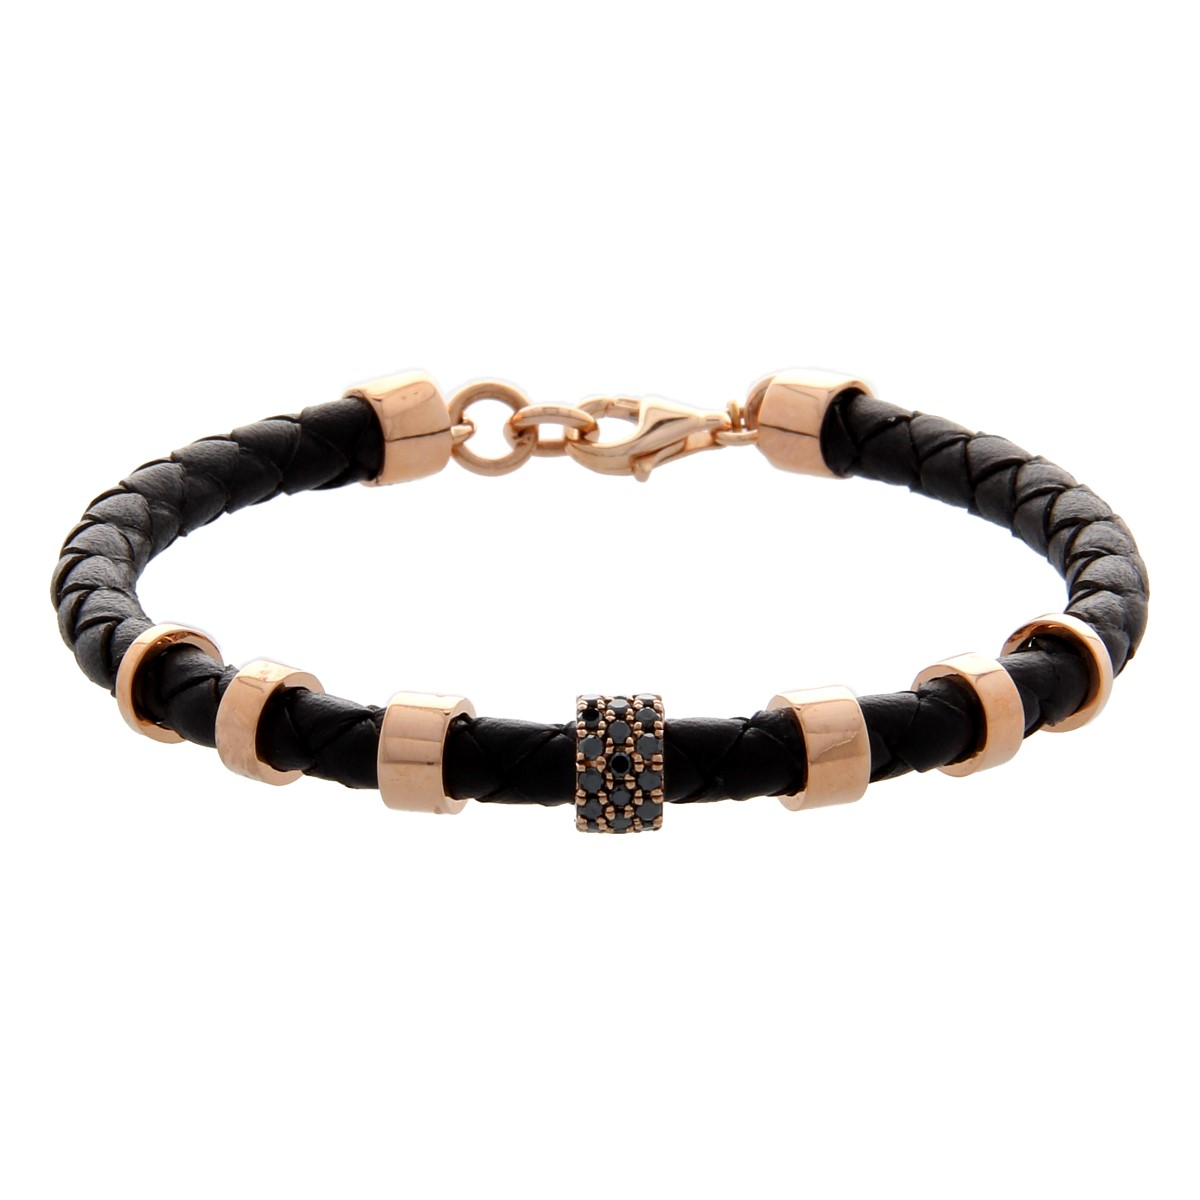 Black Braided Leather Luxury Bracelet with Rose Gold Donut and Black Diamonds